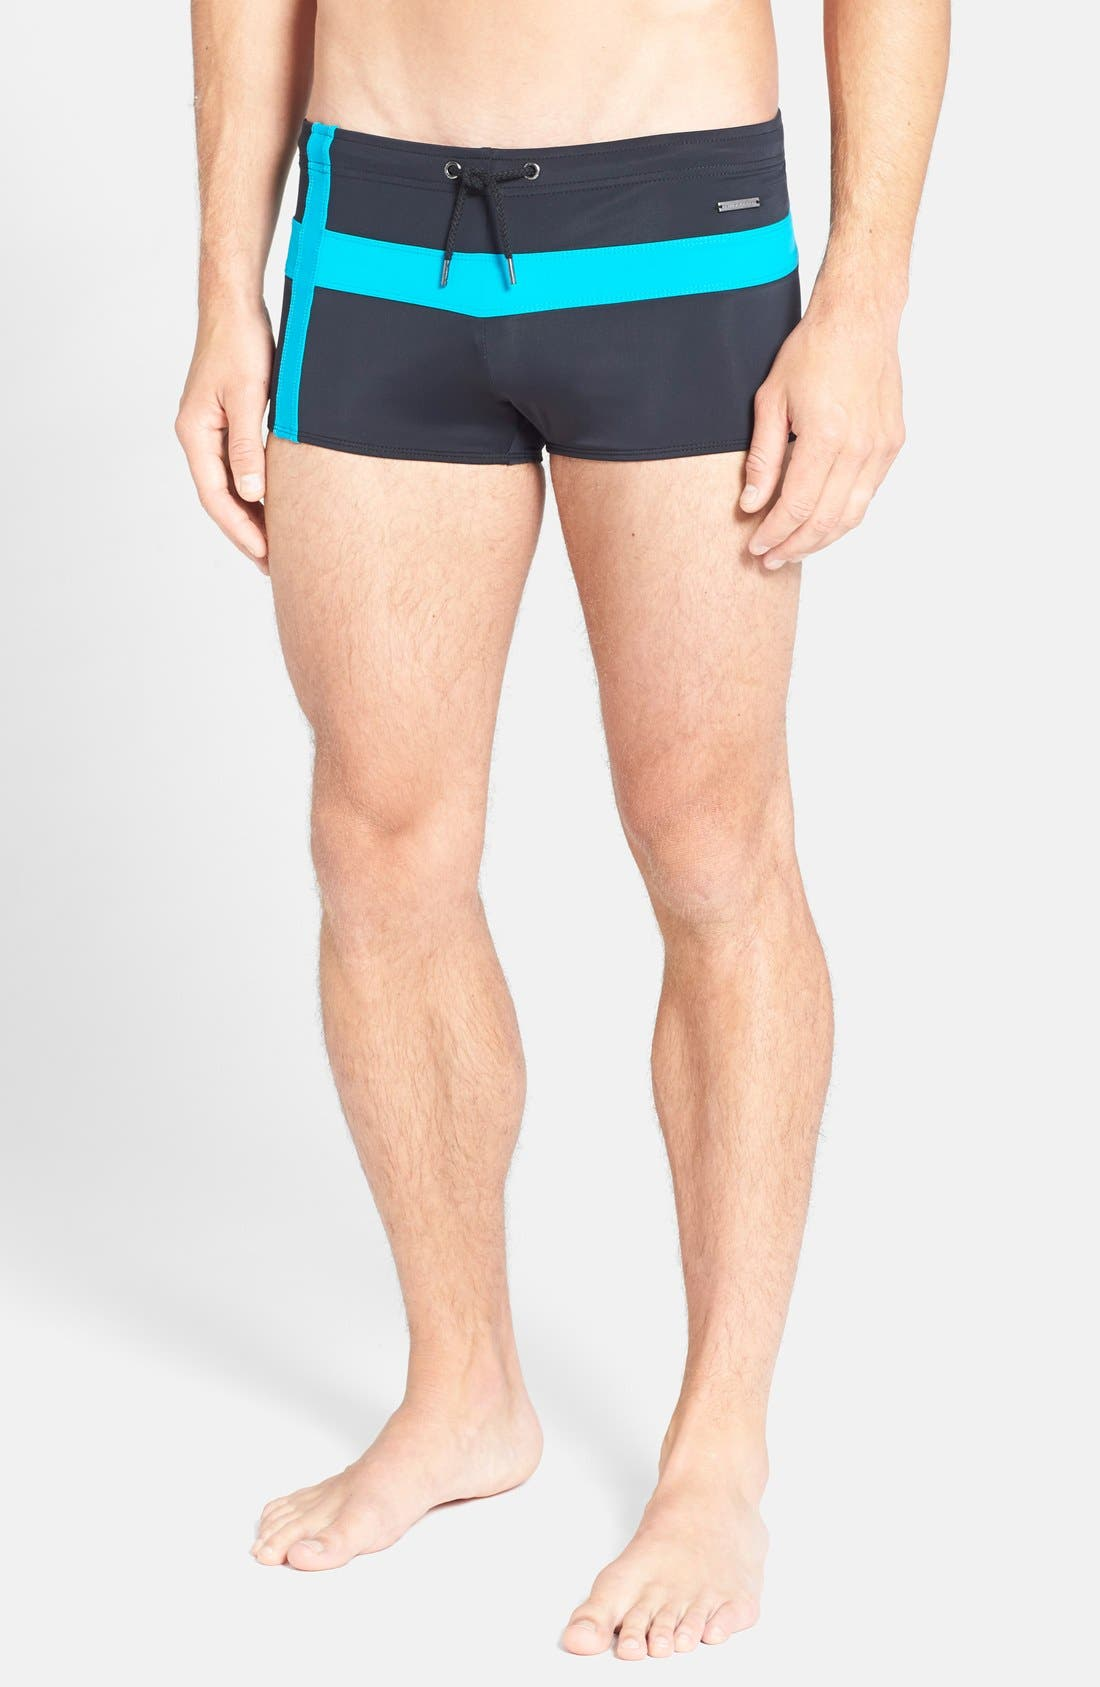 Alternate Image 1 Selected - Parke & Ronen 'Ibiza Cross' Square Cut Swim Briefs